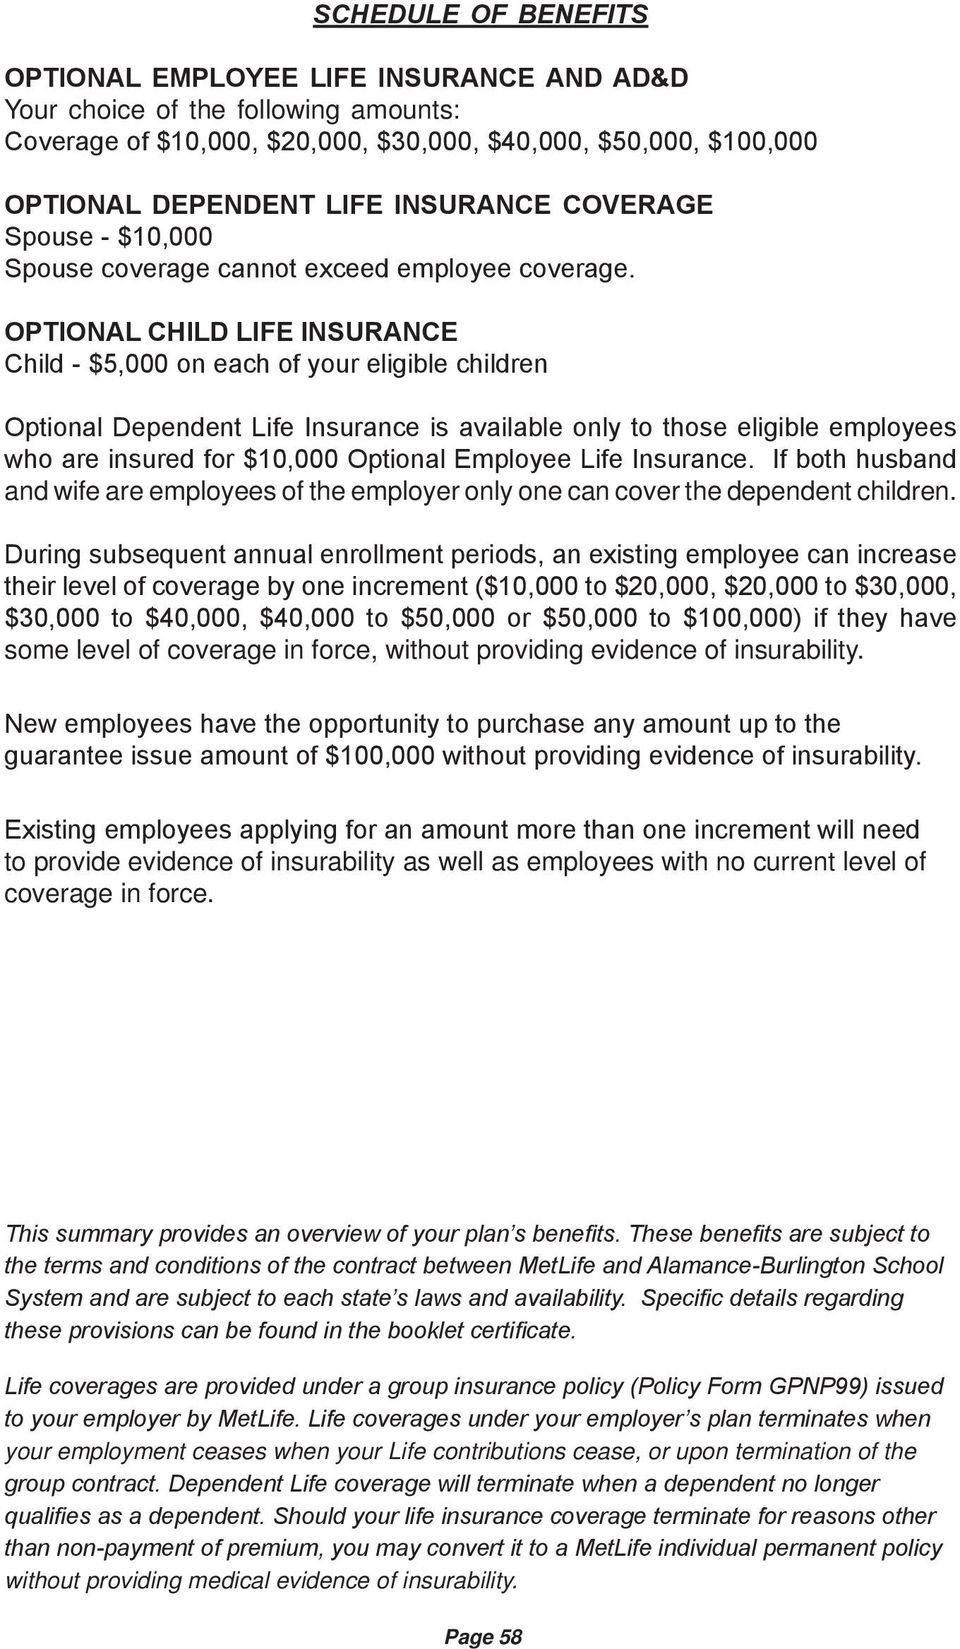 OPTIONAL CHILD LIFE INSURANCE Child - $5,000 on each of your eligible children Optional Dependent Life Insurance is available only to those eligible employees who are insured for $10,000 Optional